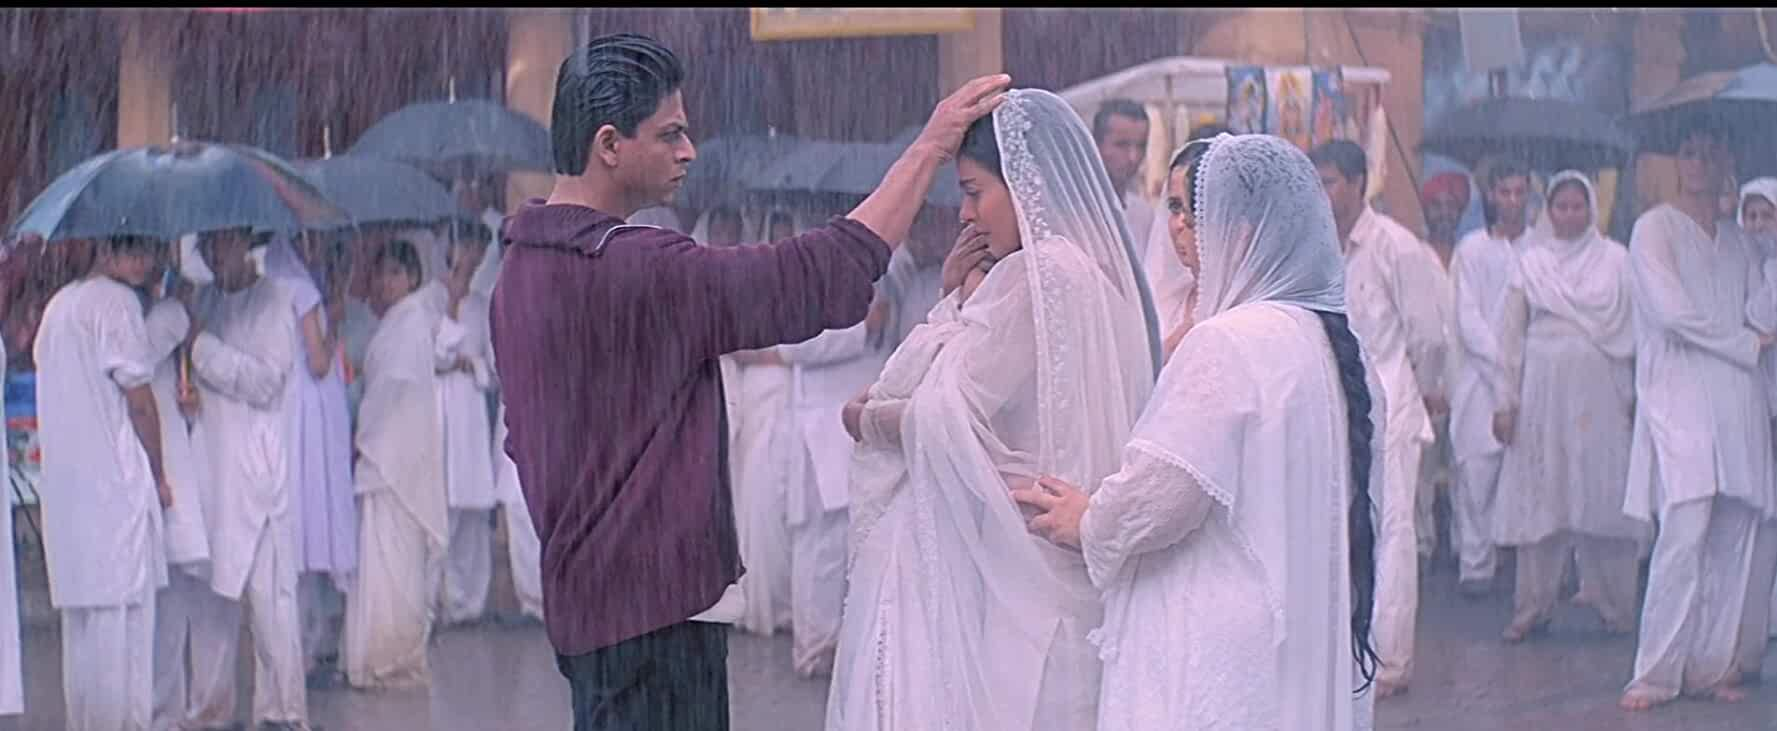 Kajol and Shah Rukh Khan in Kabhi Khushi Kabhie Gham 2001